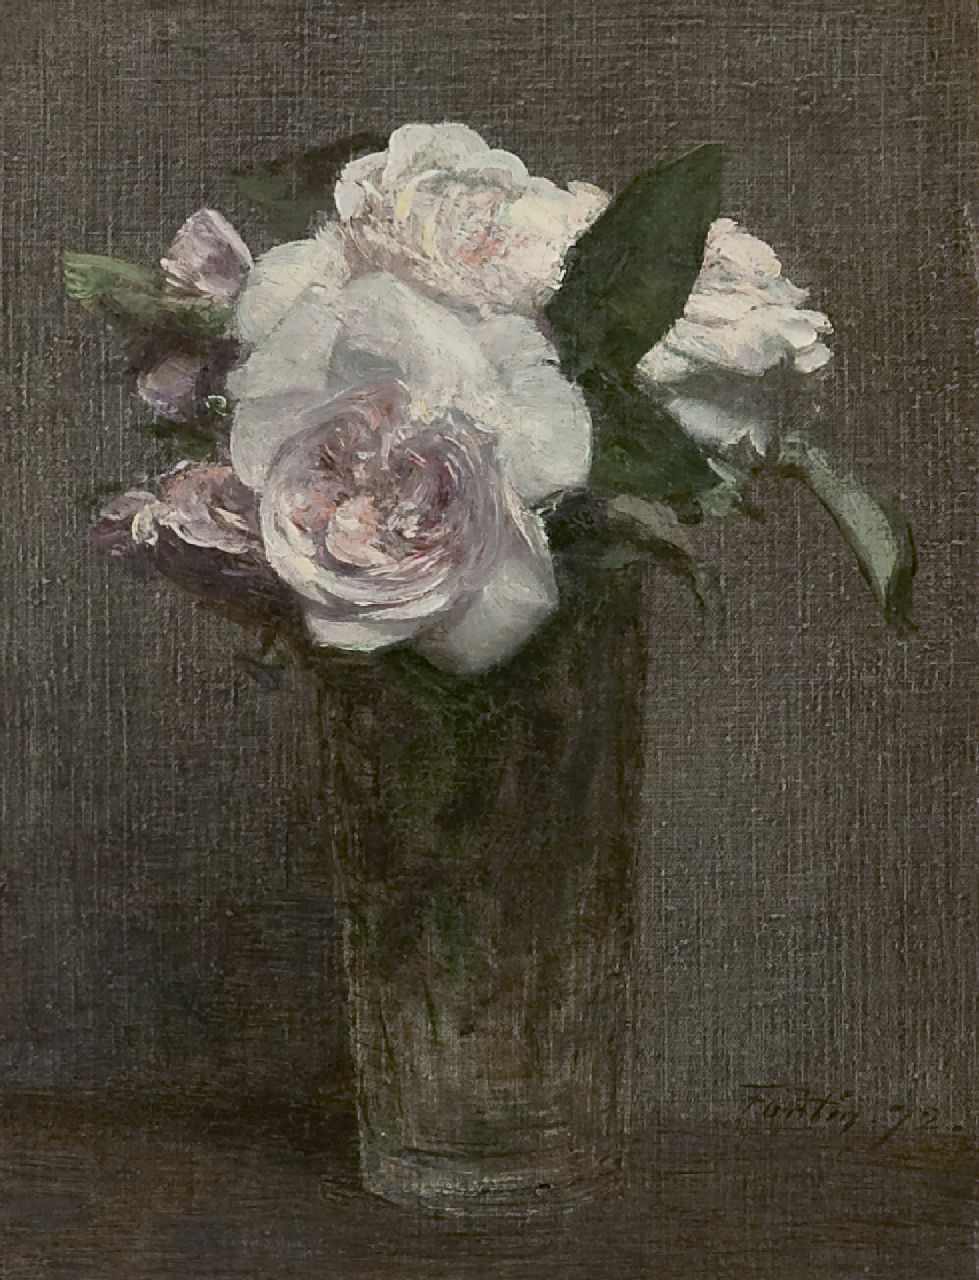 Fantin-Latour I.H.J.T.  | Ignace 'Henri' Jean Théodore Fantin-Latour, Roses in a glass vase, oil on canvas 28.3 x 21.8 cm, signed l.r. and painted '72